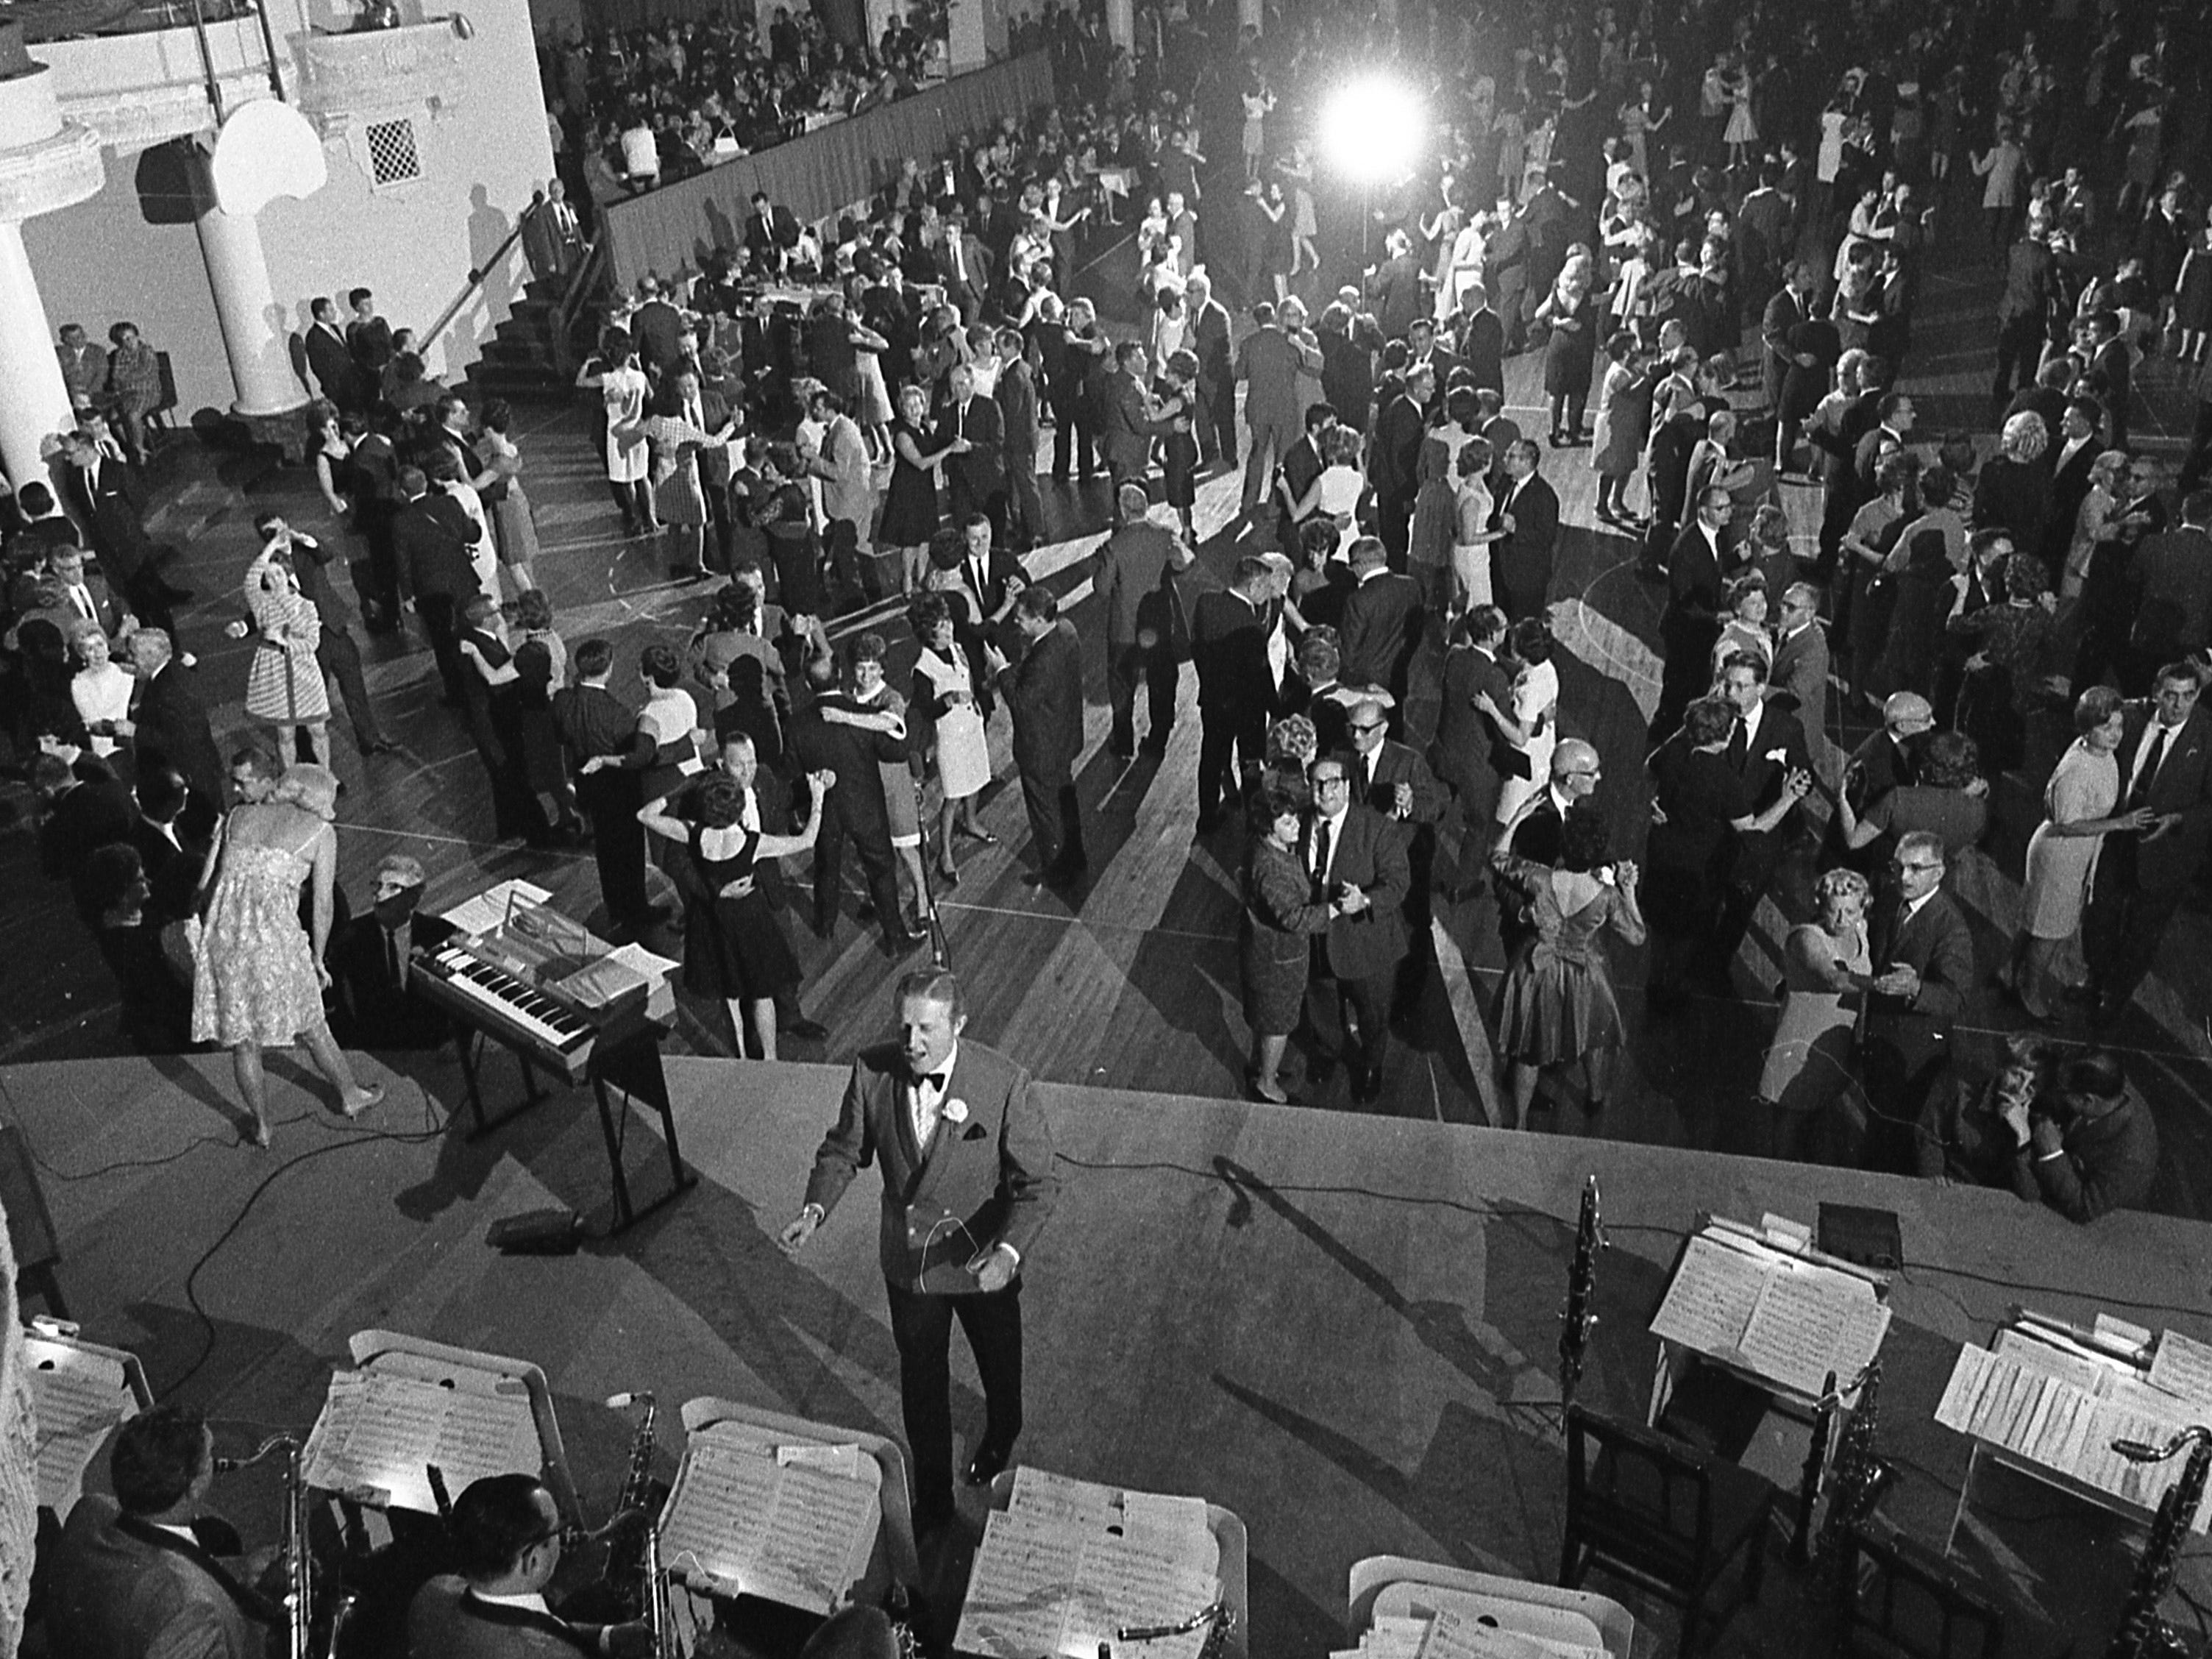 About 4,500 people turn out for the reopening of the Eagles Million Dollar Ballroom on Oct. 3, 1968. The ballroom in the Eagles Club, 2401 W. Wisconsin Ave., had been operated by the Devine family since 1934; it was closed in February 1968 because of fading business. The Eagles Club took over management of the facility, with Wayne King and his Orchestra the reopening-night headliner. This photo was published in the Oct. 4, 1968, Milwaukee Journal.